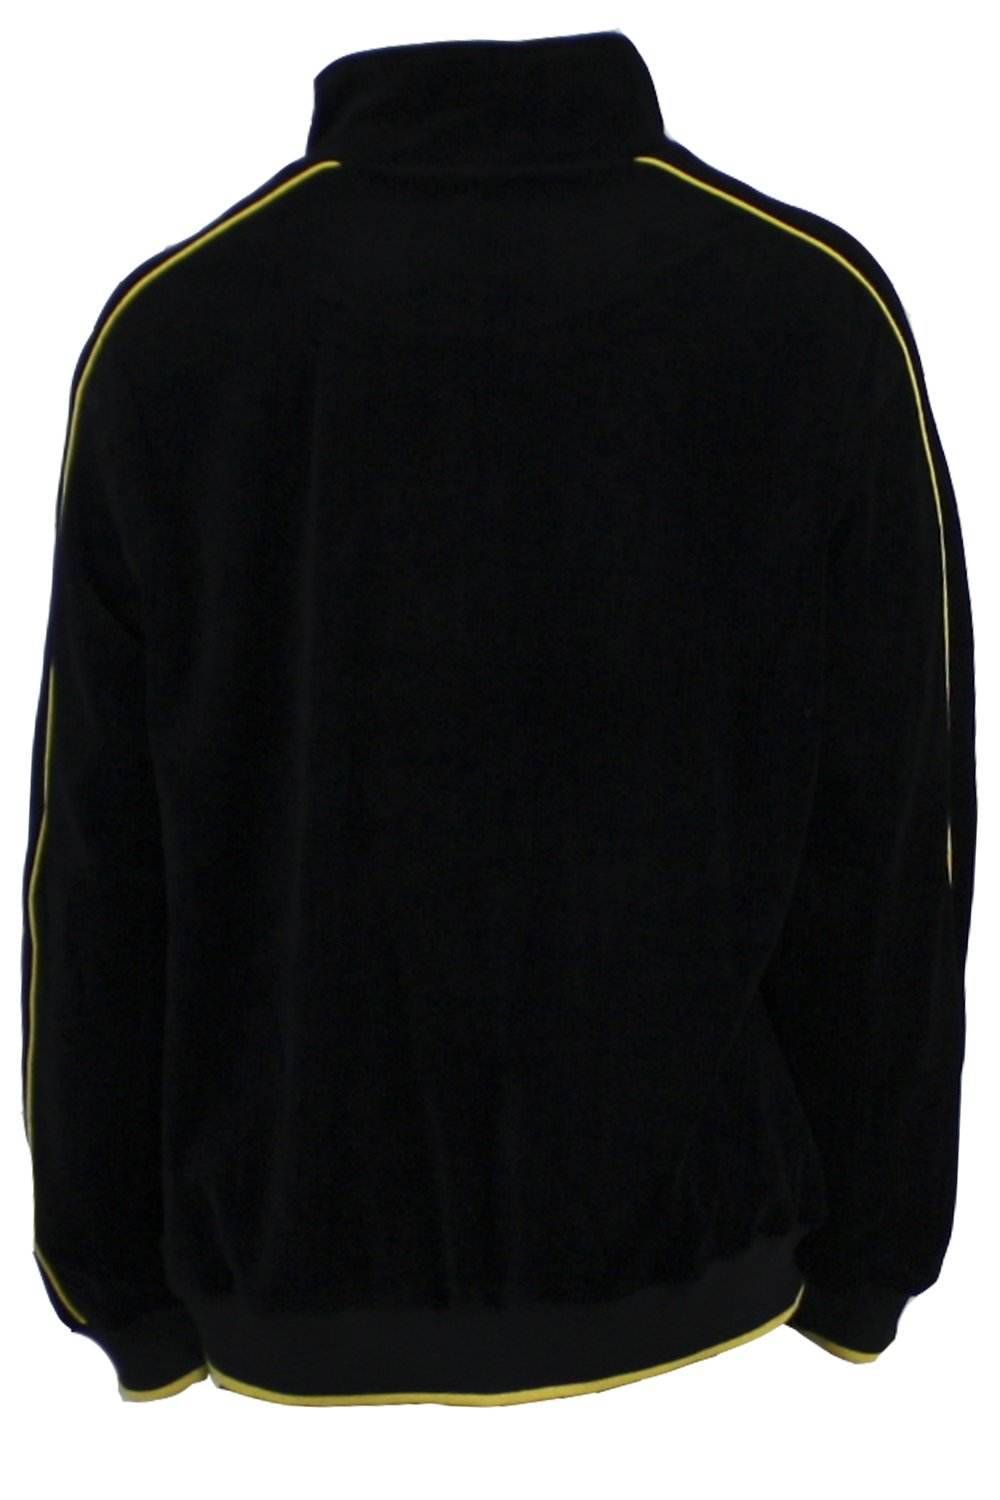 Mens Black Velour Tracksuit with Yellow Piping (Large) by Sweatsedo (Image #4)